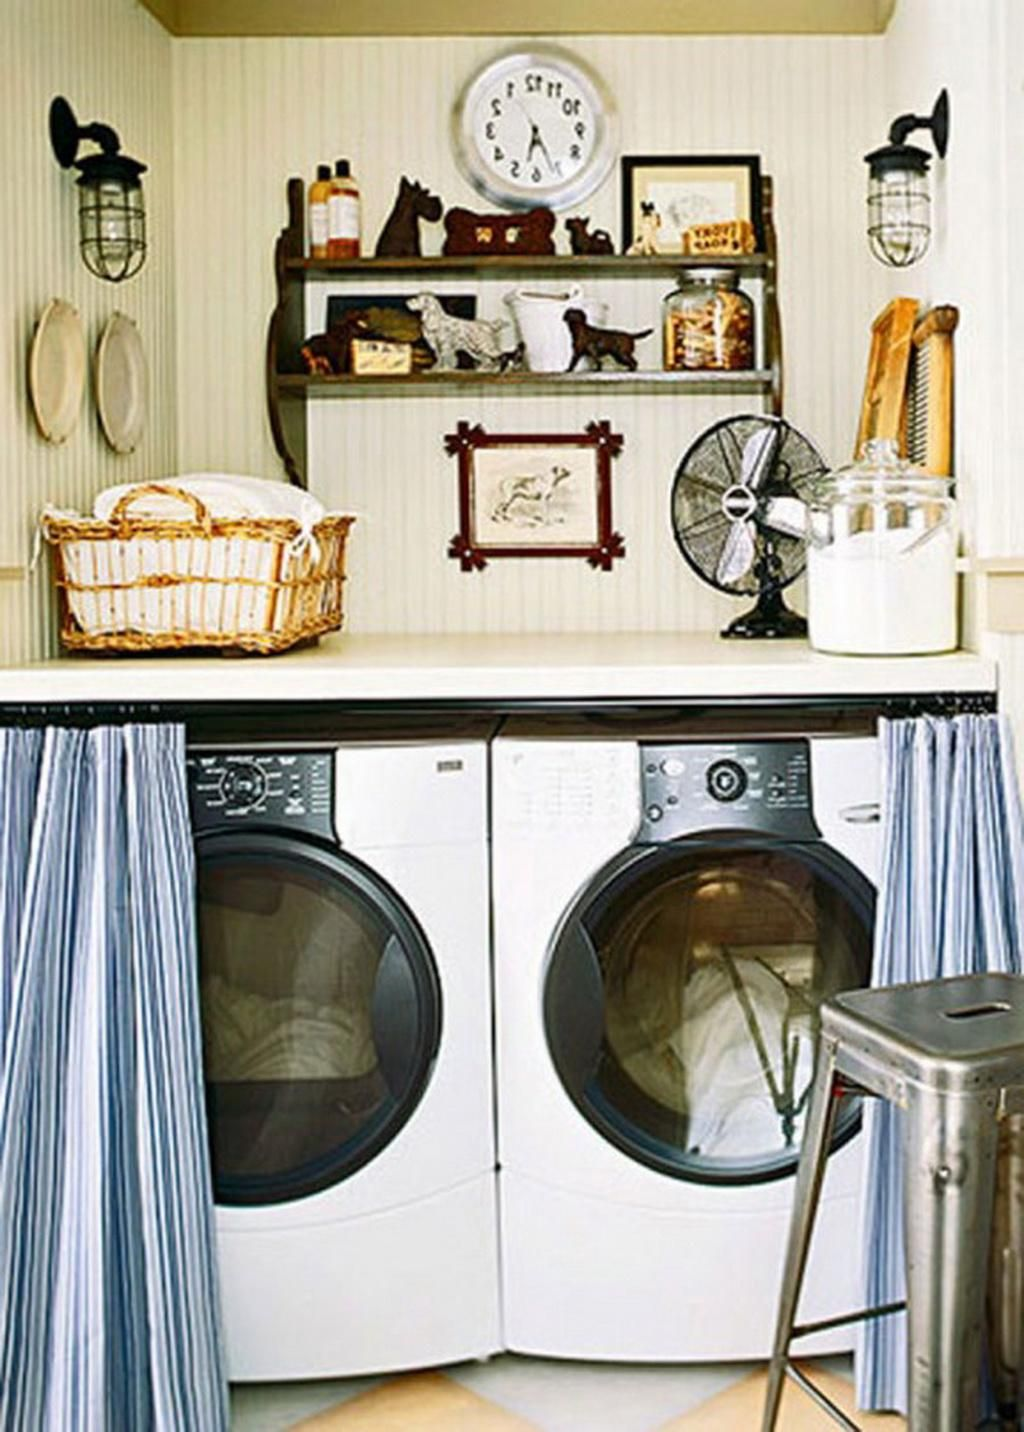 Adorable Blue Laundry Room Curtain Design Beside Washing Machine